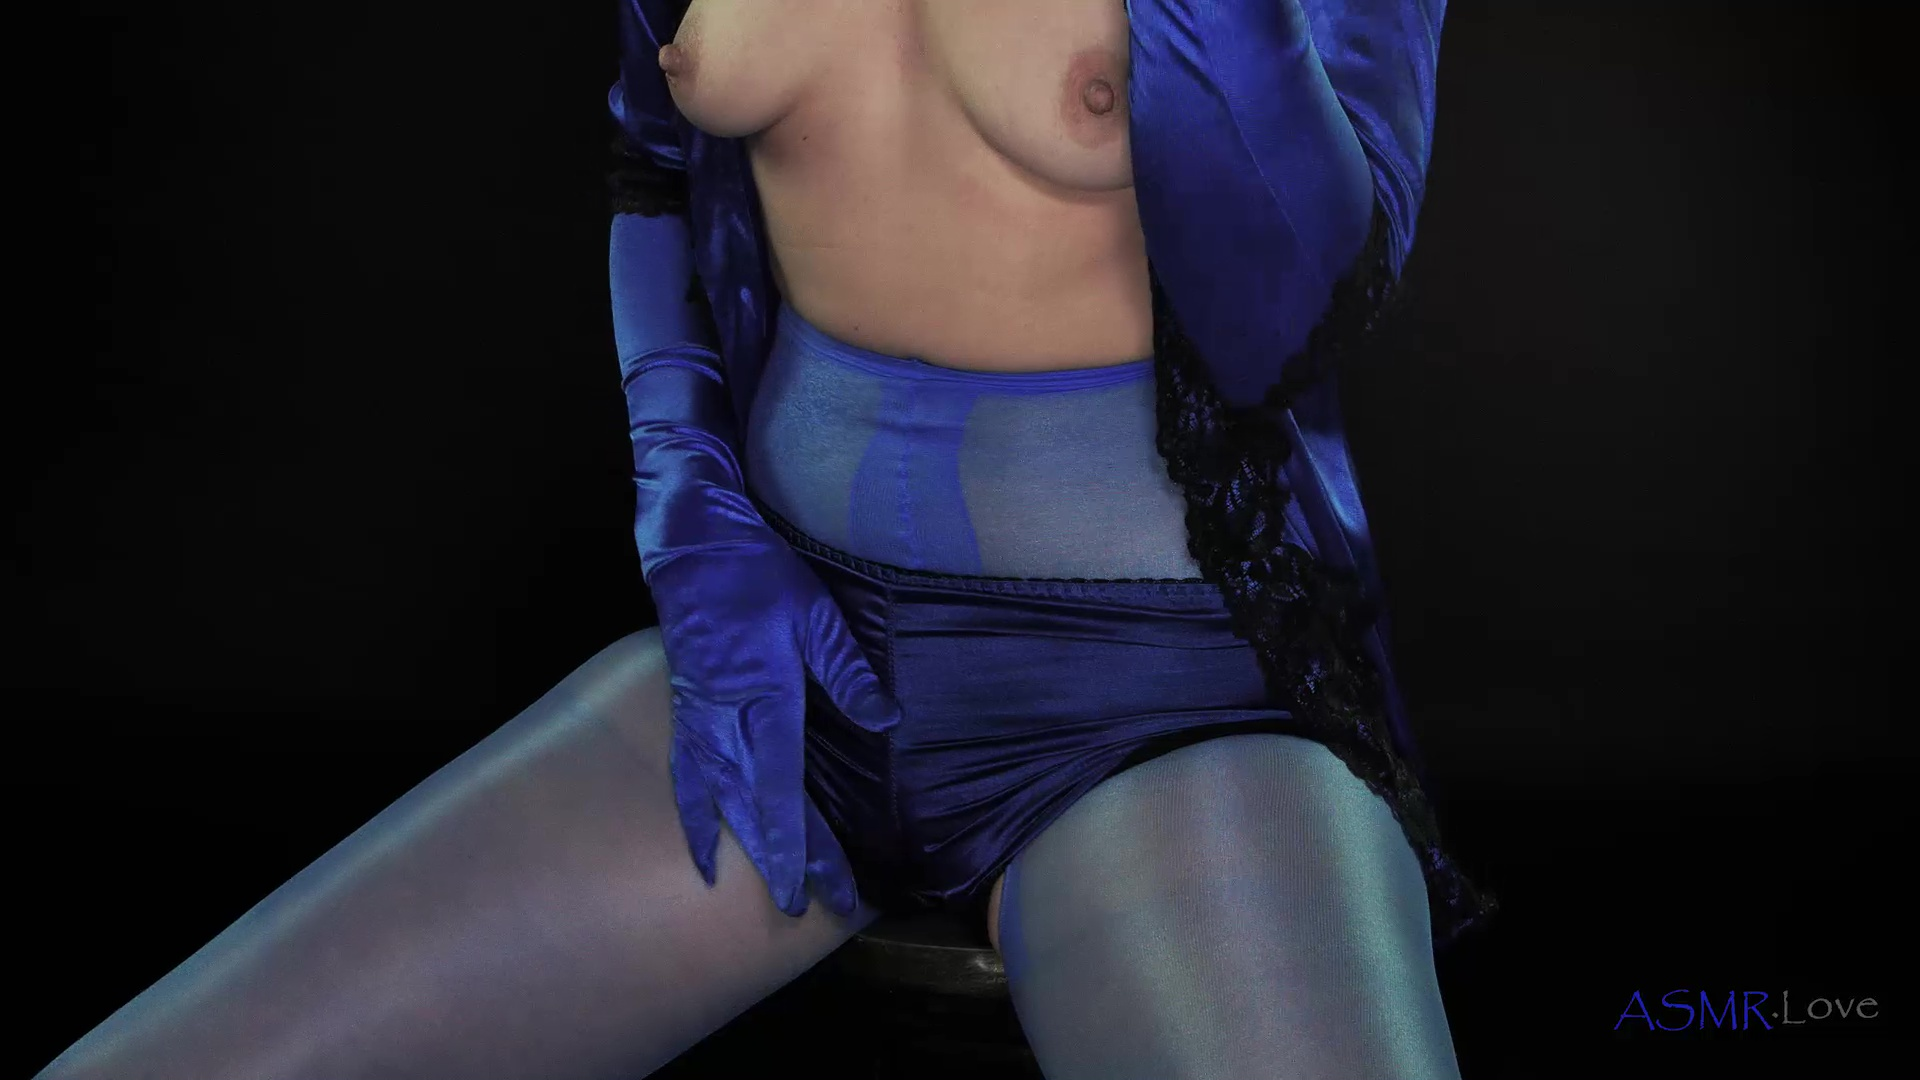 content/Lucy/Wanking in Blue Satin Panties ASMR - Lucy/2.jpg